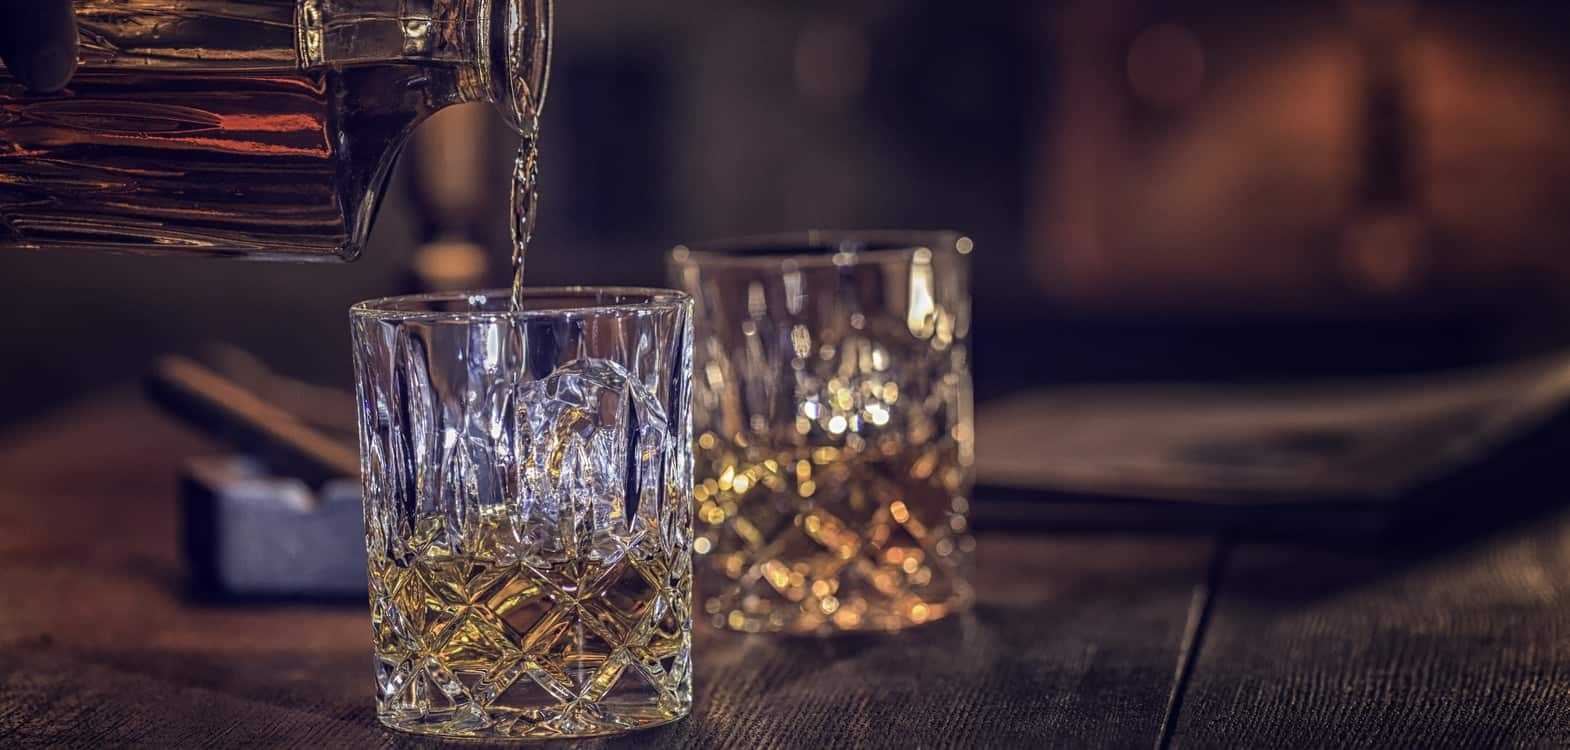 Bottle of Scottish whisky being poured into Edinburgh Crystal cut glass tumbers